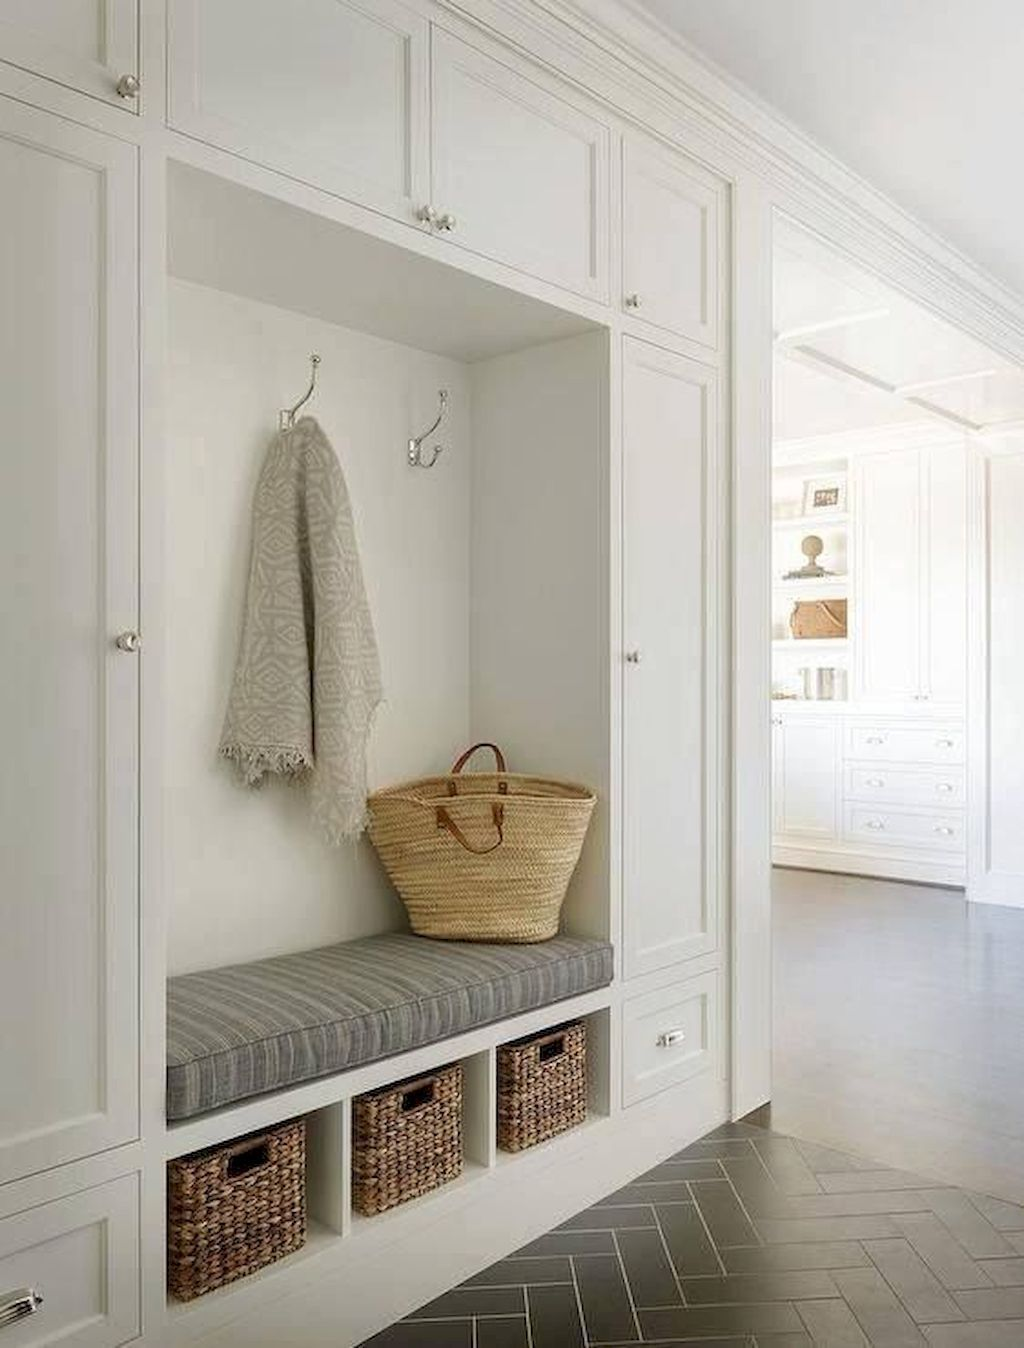 44 Adorable Small Mudroom Entryway Storage Design Ideas